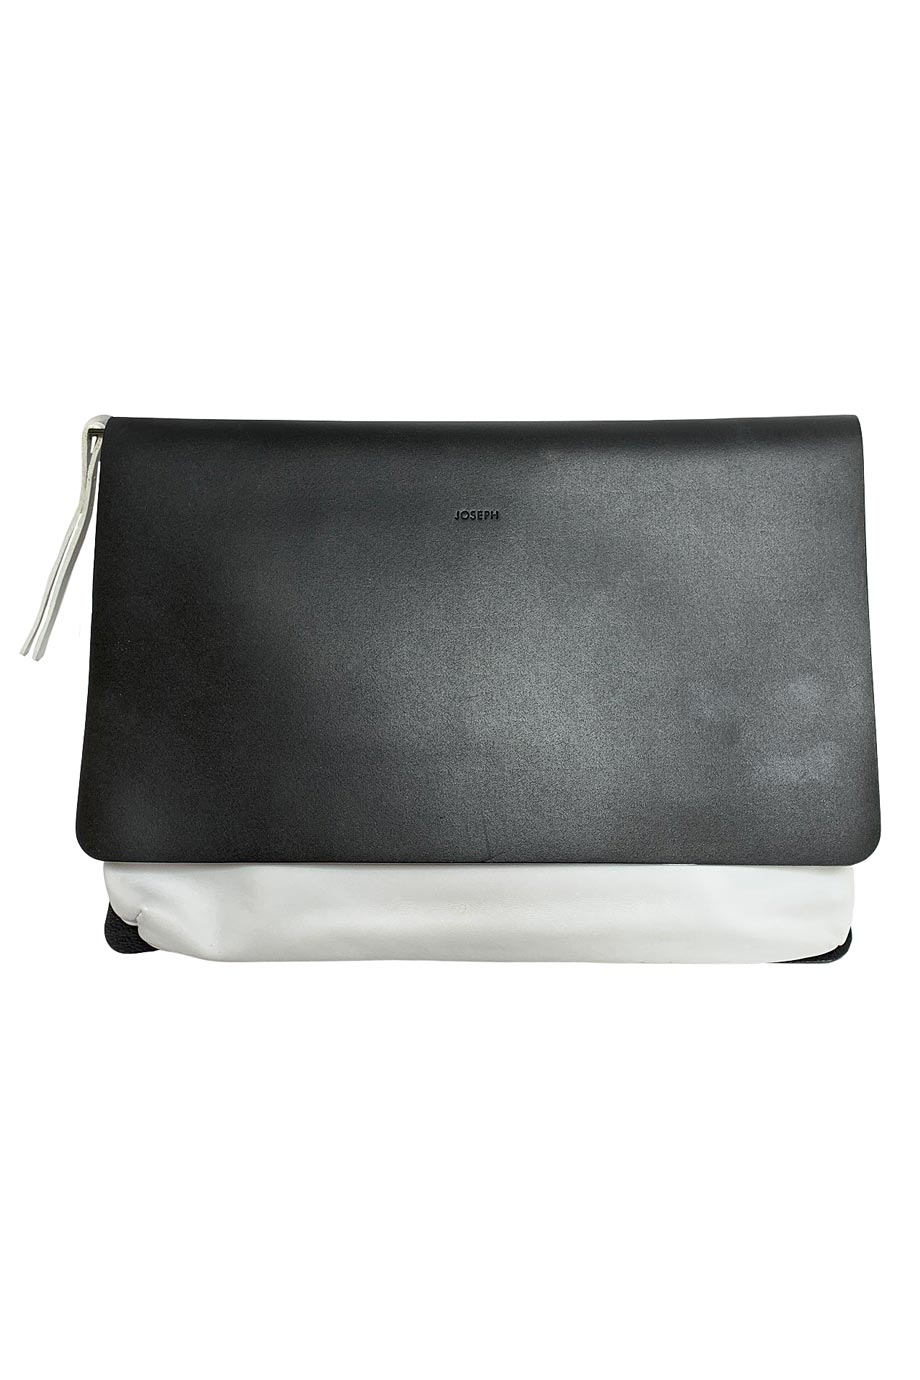 Joseph Minimalist Two-Tone Black + White Leather Clutch Handbag